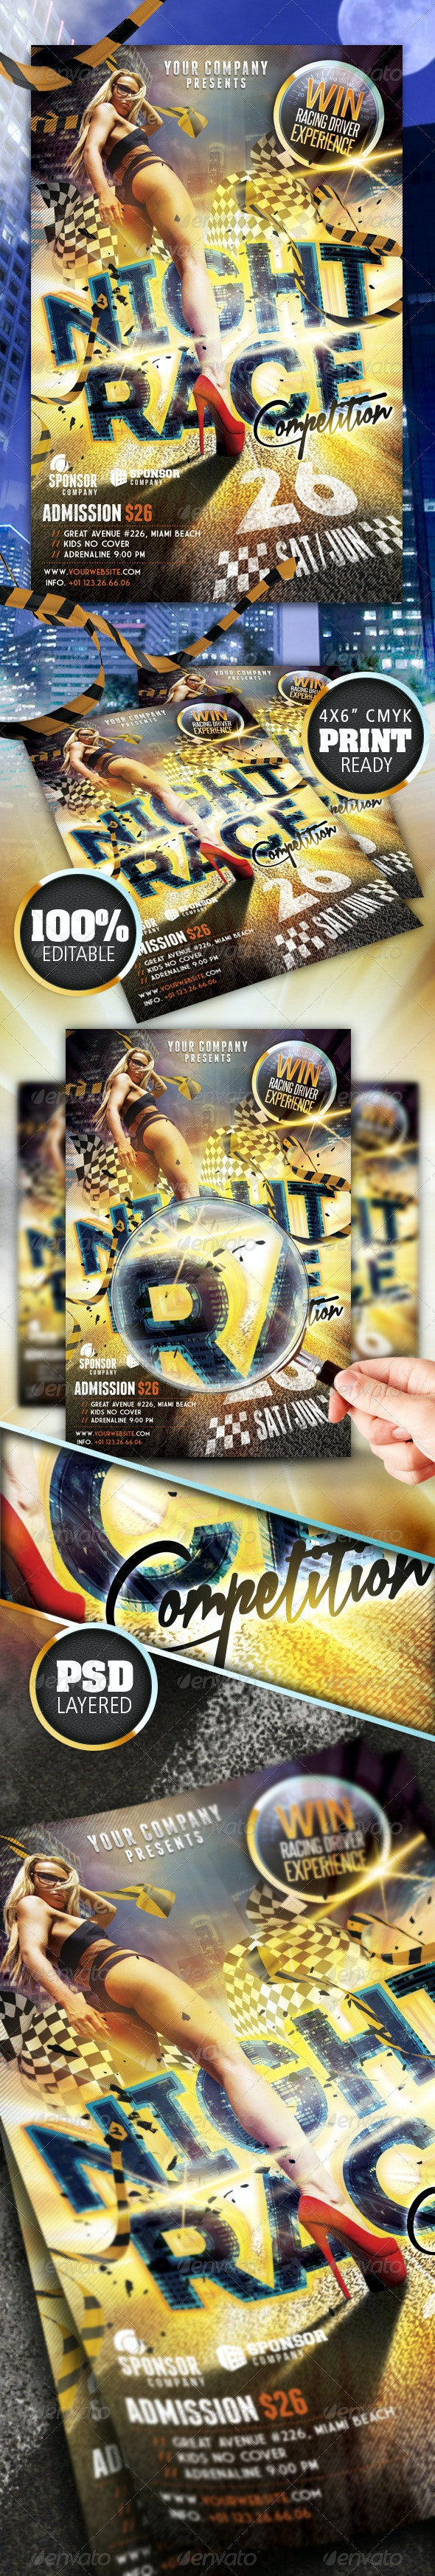 Night Race Flyer - Sports Events